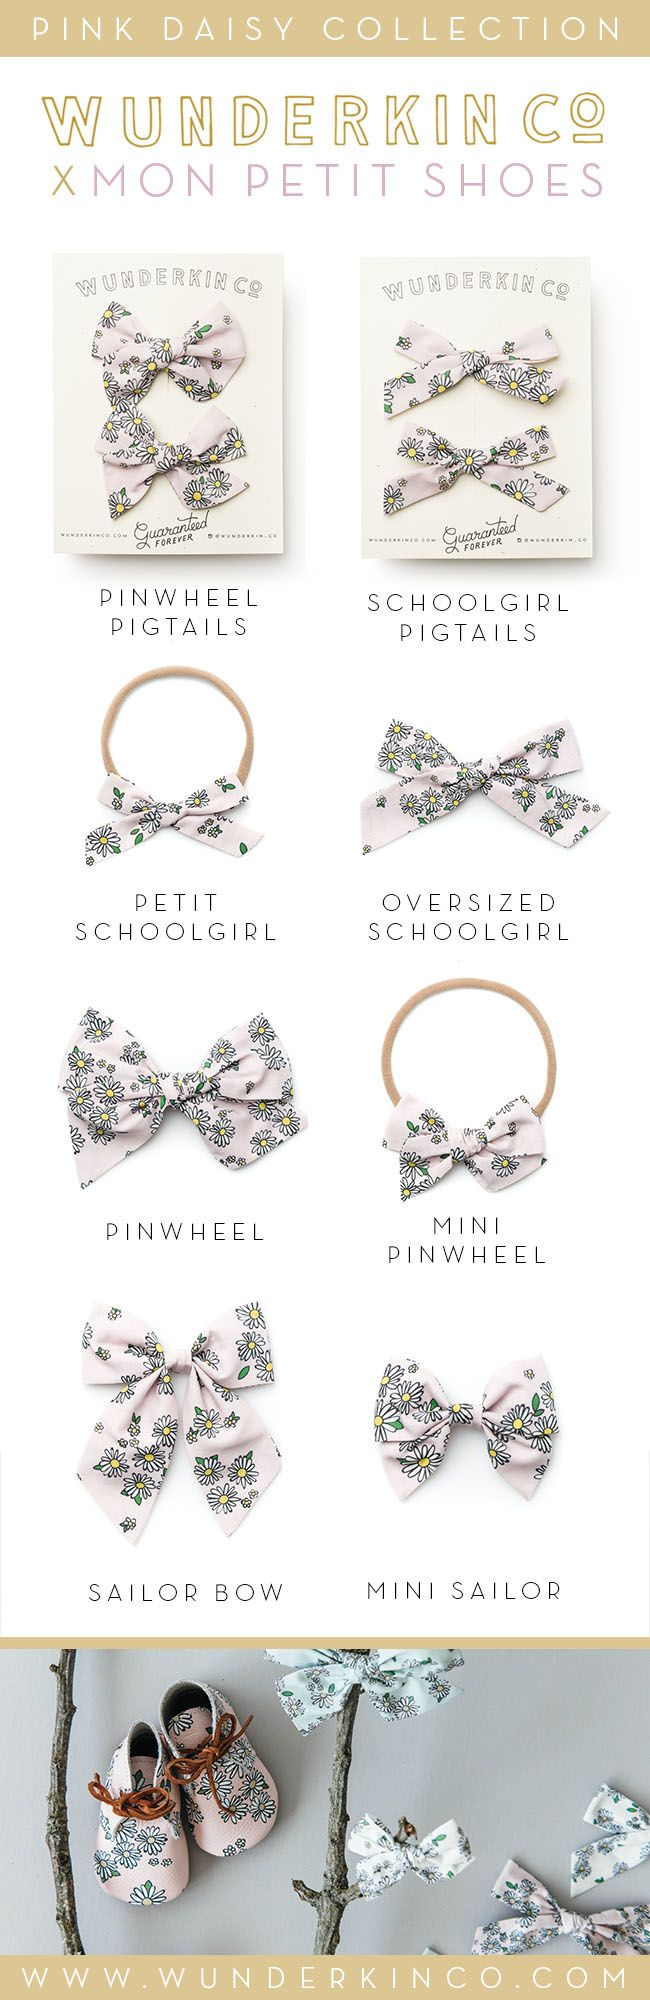 Shop the Mon Petit Shoes x Wunderkin Co. Collection coming July 31st at 10AM MT. // Classic hair bows and matching shoes for your baby, toddler or little girl and her free spirited style. Our bows are handmade by women in the USA and guaranteed for life.